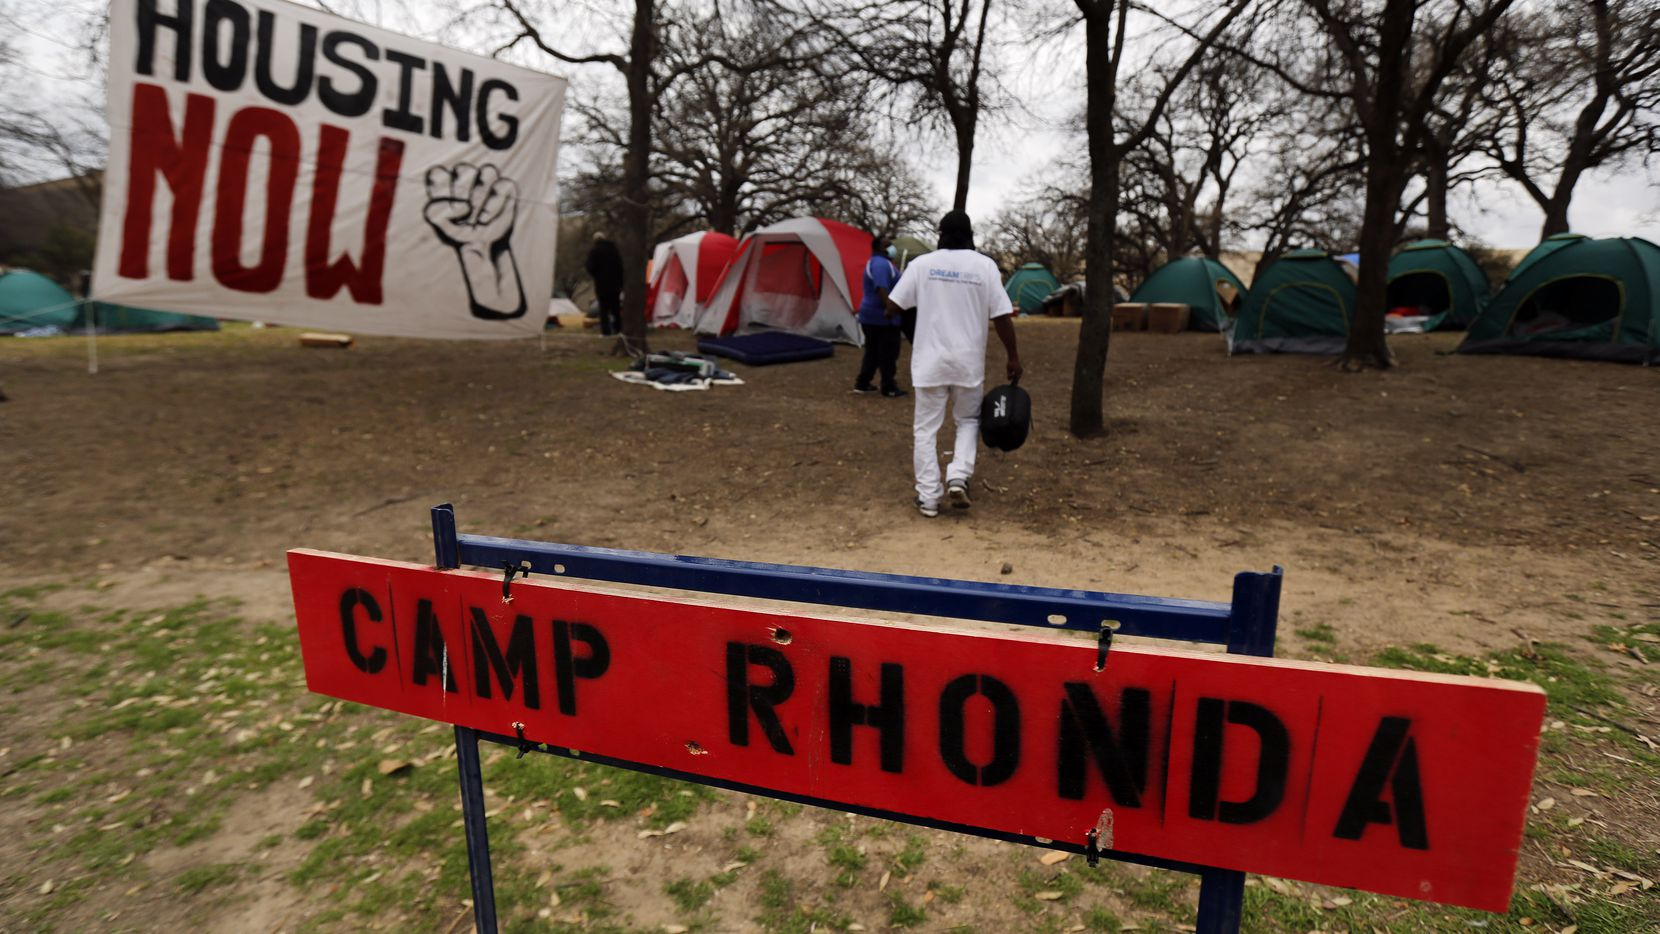 Between 30-40 people without housing setup Camp Rhonda adjacent to Pioneer Park Cemetery in downtown Dallas, Tuesday, March 9, 2021. The City of Dallas moved Camp Rhonda out of a private site near I-45 and Ferris St. (Tom Fox/The Dallas Morning News)